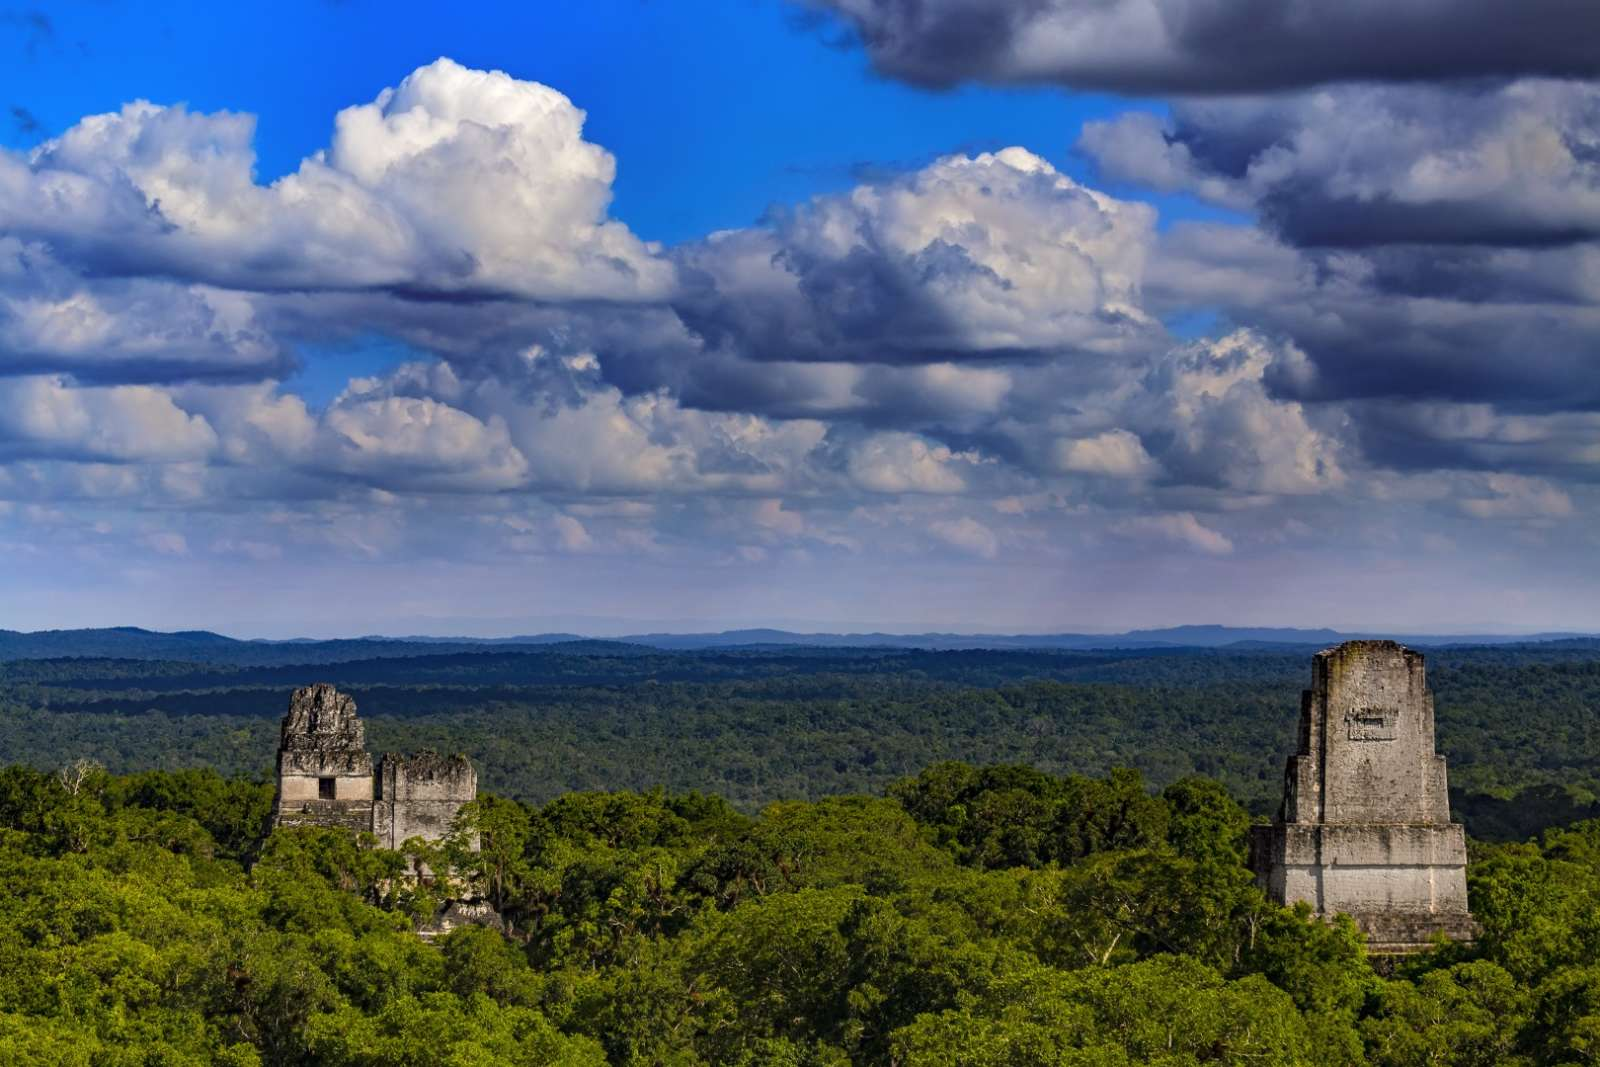 Panoramic view of Mayan ruins above the jungle canopy in Tikal, Guatemala